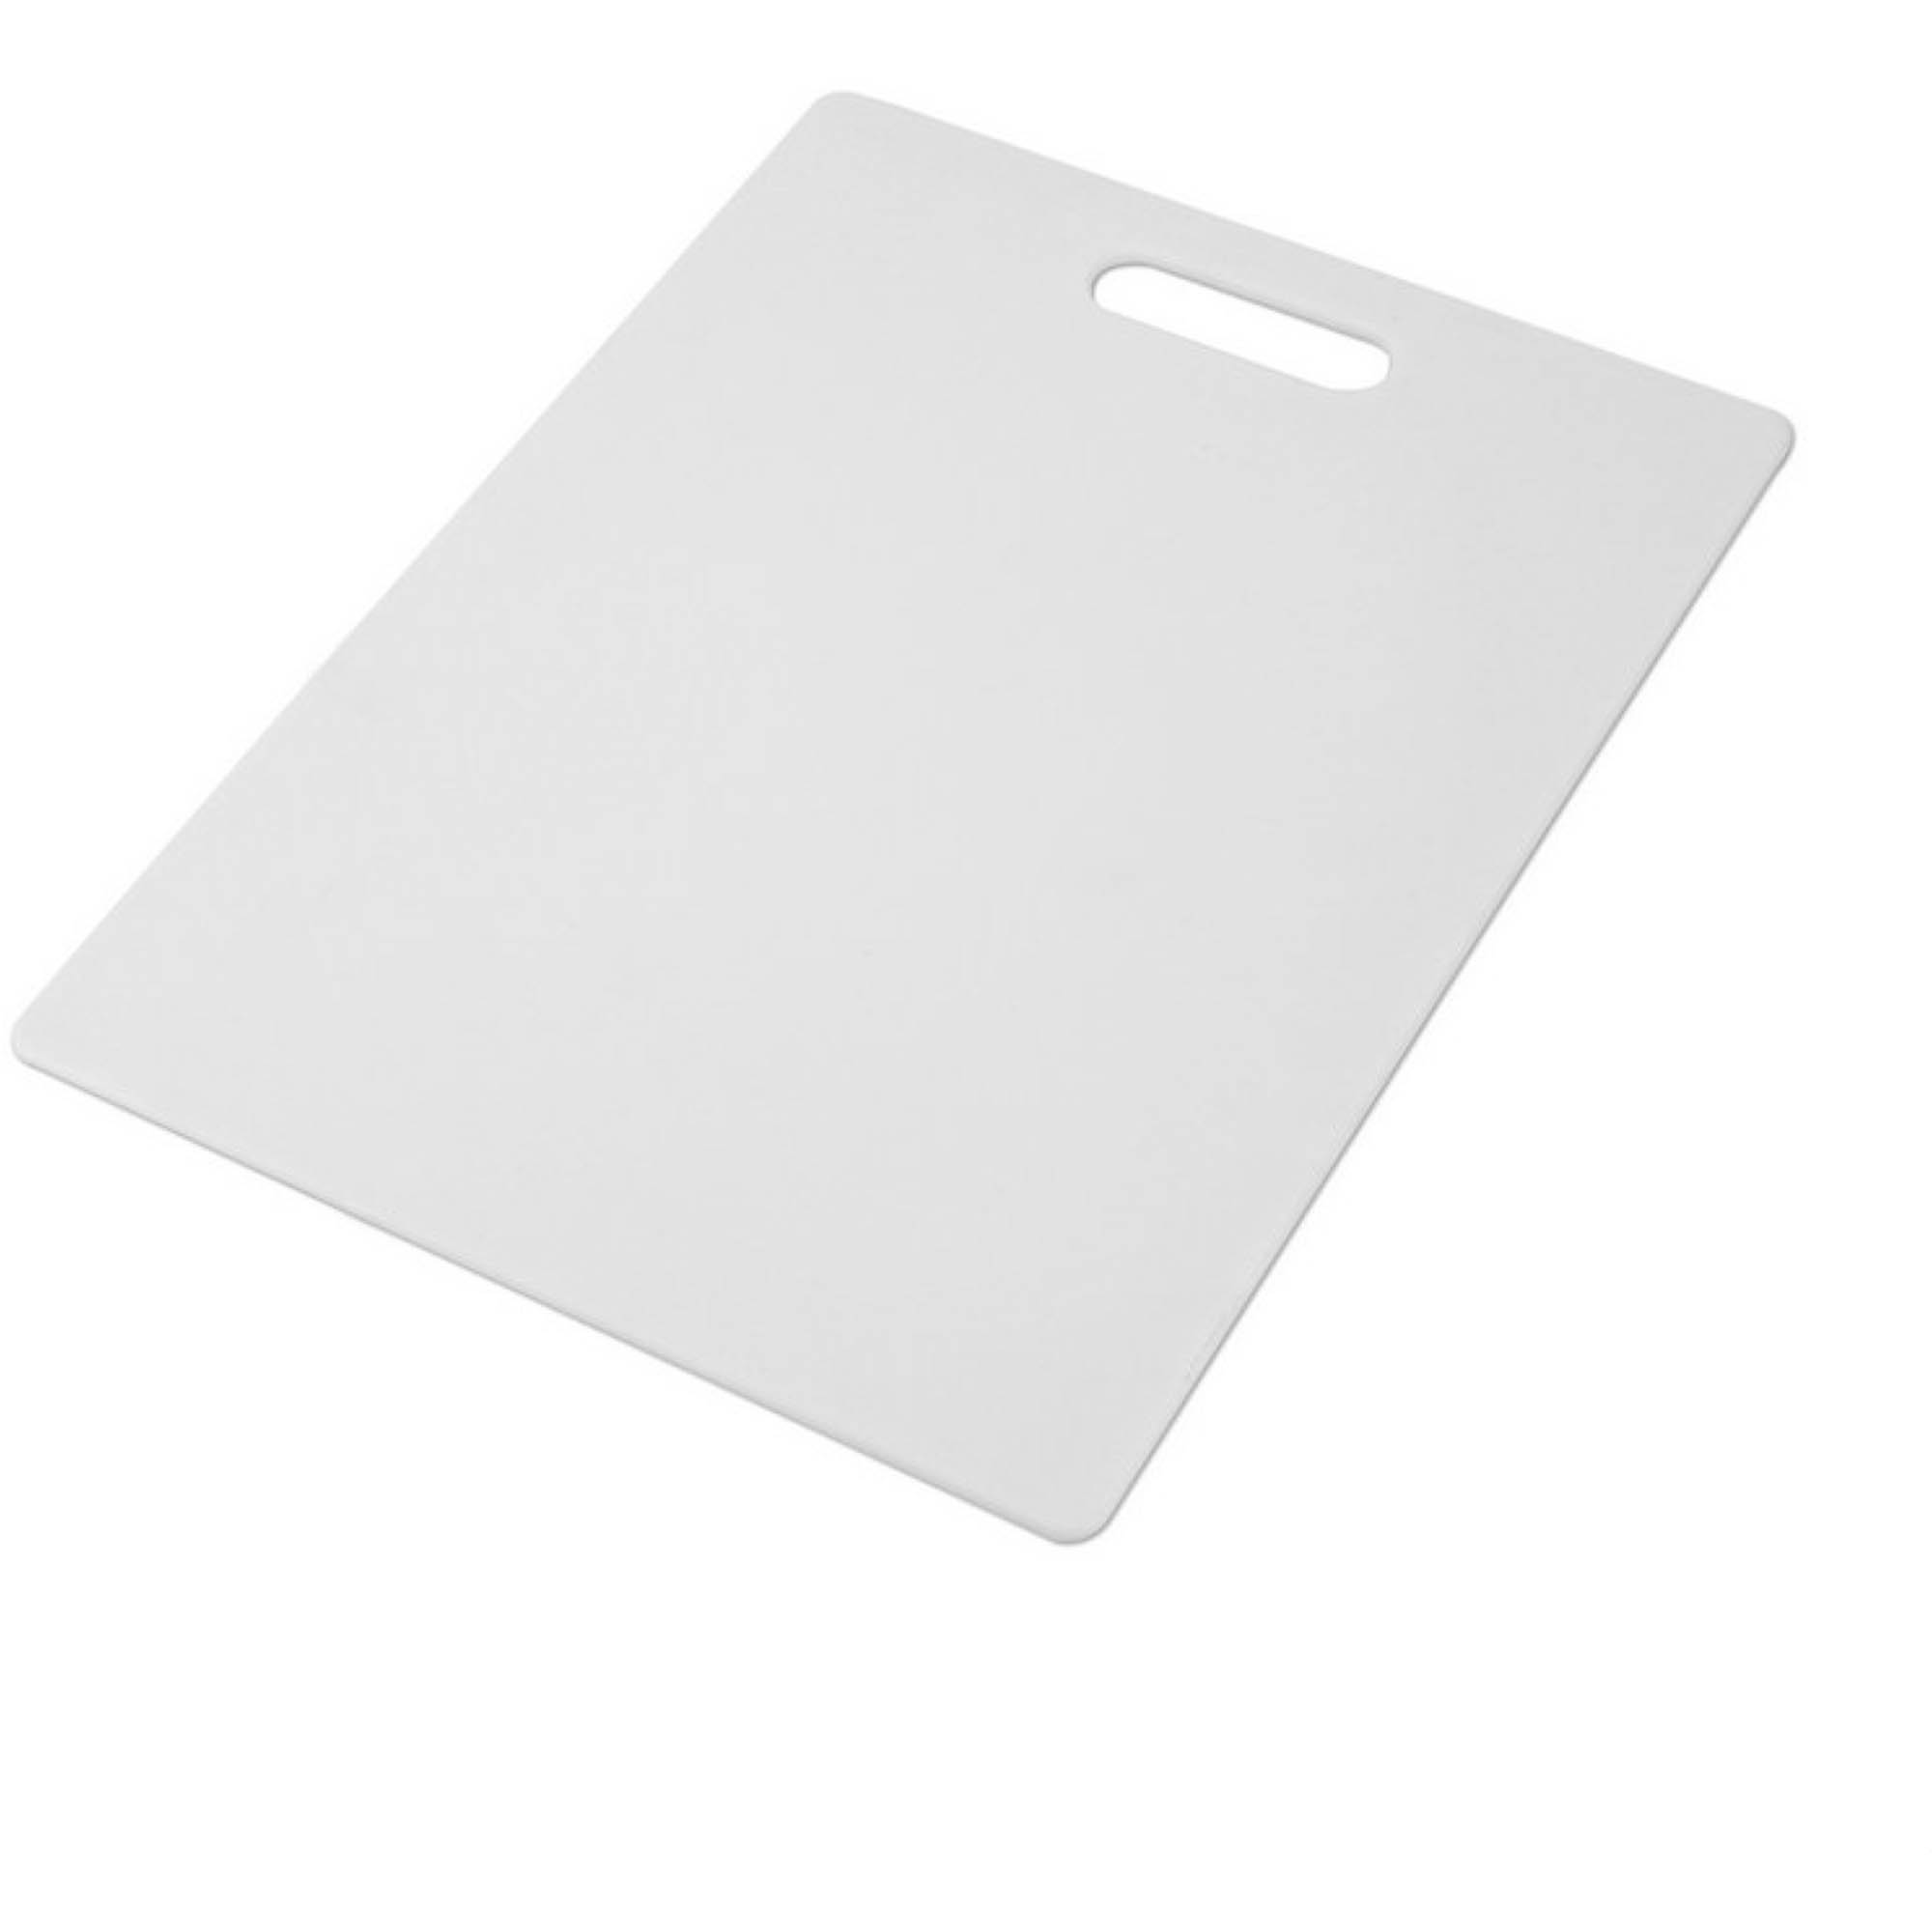 Farberware 11 inch By 14 inch White Poly Cutting Board